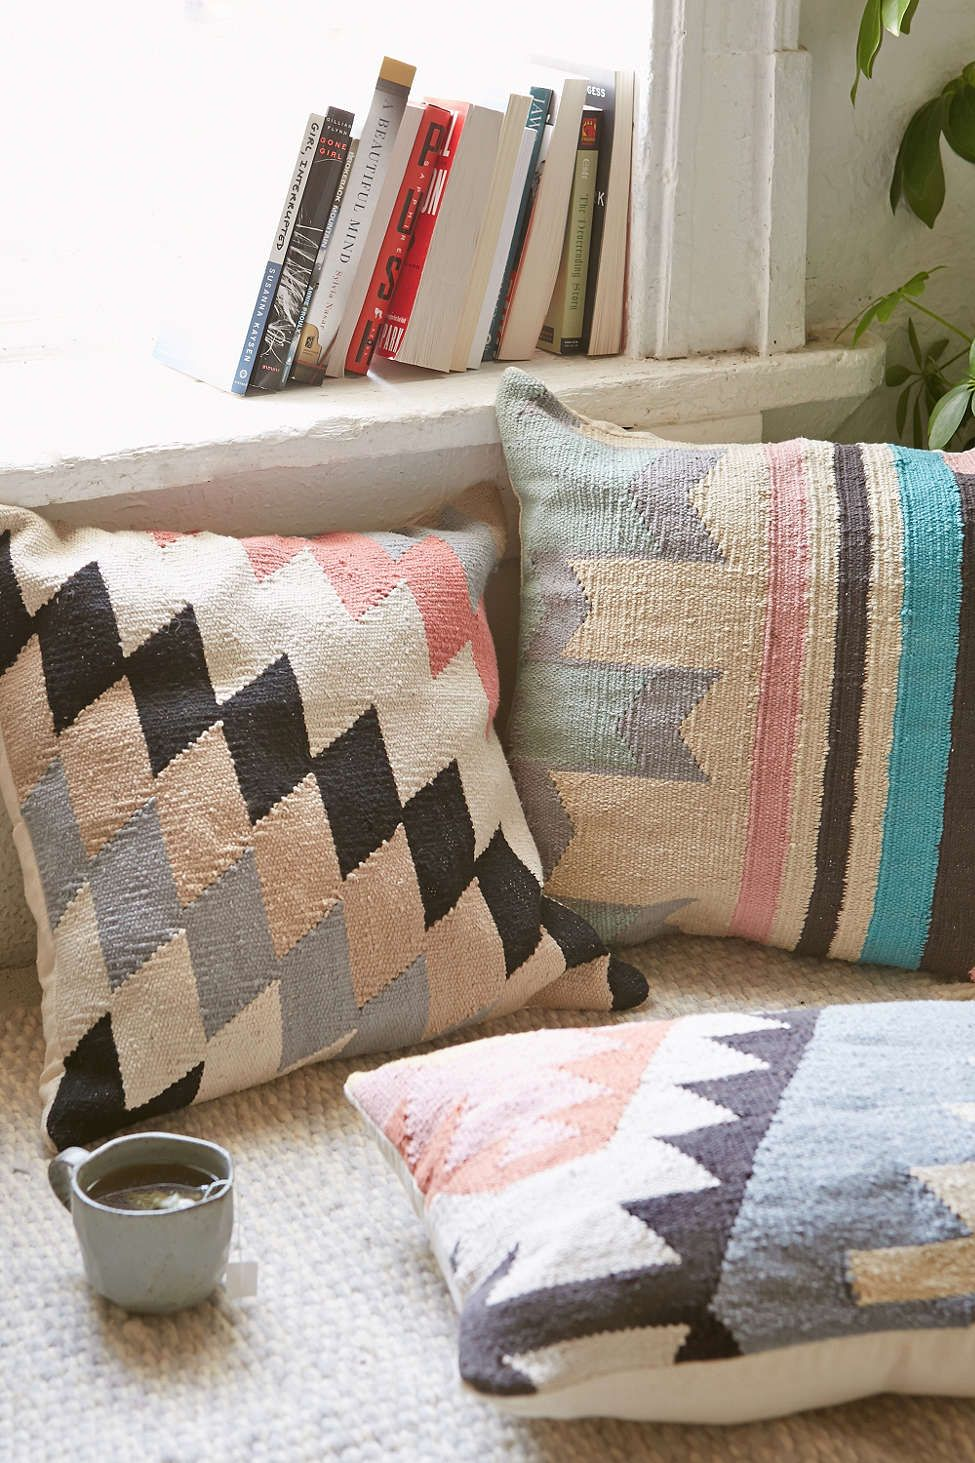 color pillow pillows by kilim geometric cover cushions store multiple com kilimpillowstore turkish